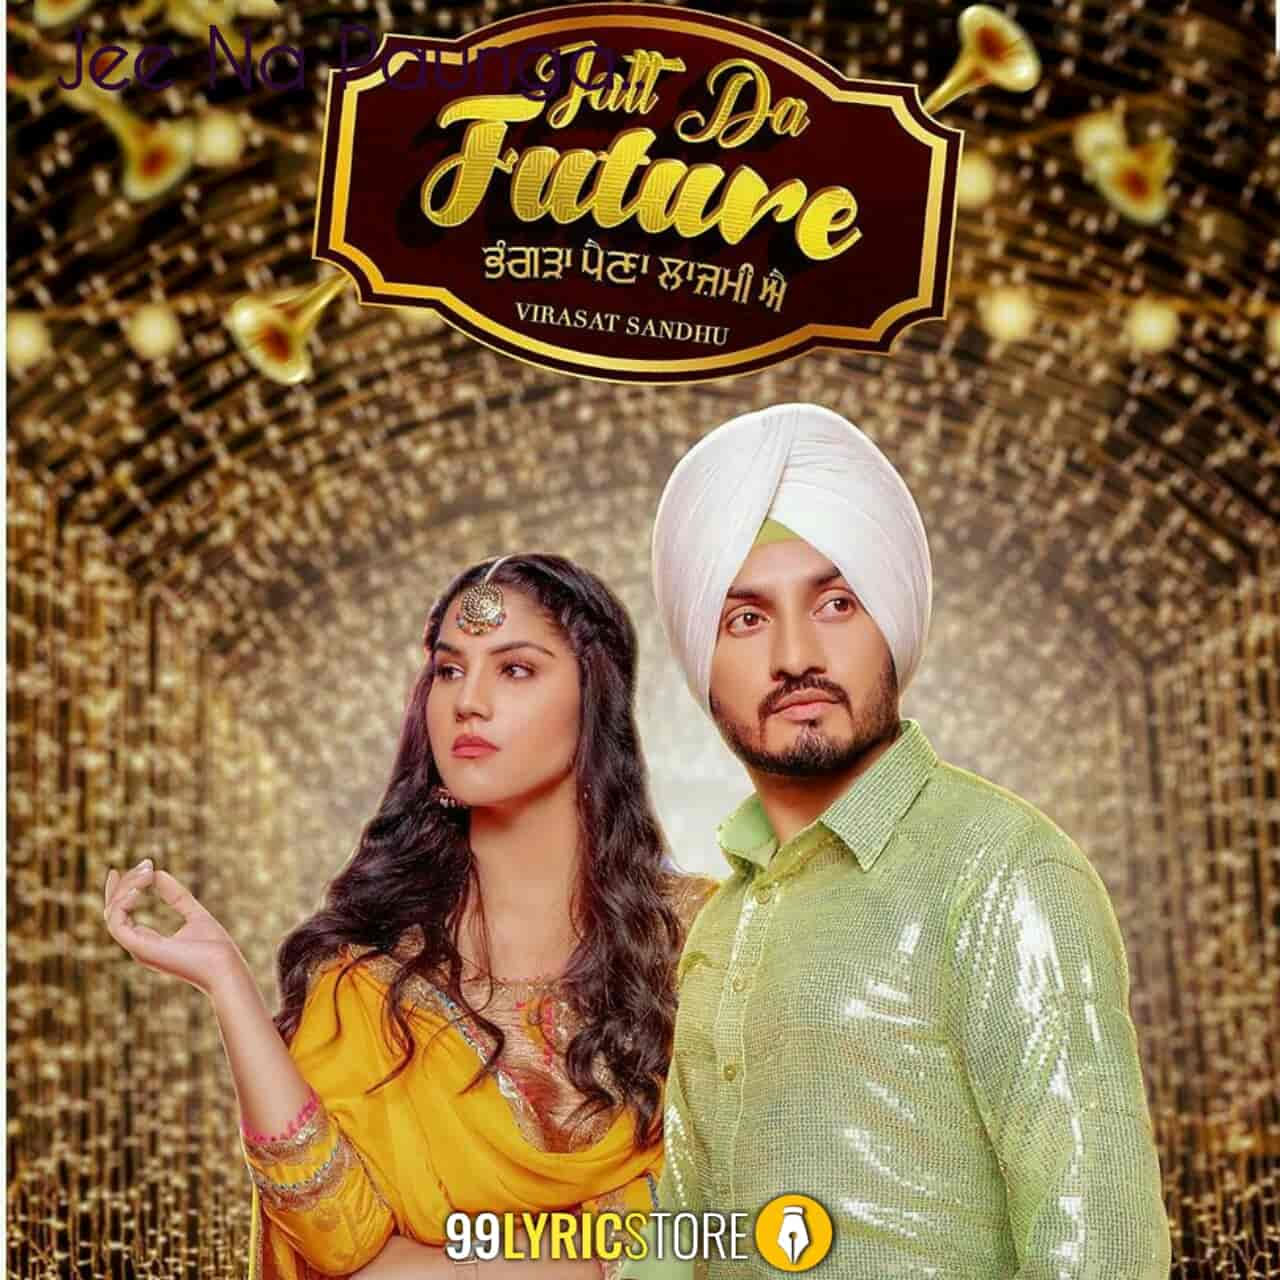 Jatt Da Future Song Images By Virasat Sandhu